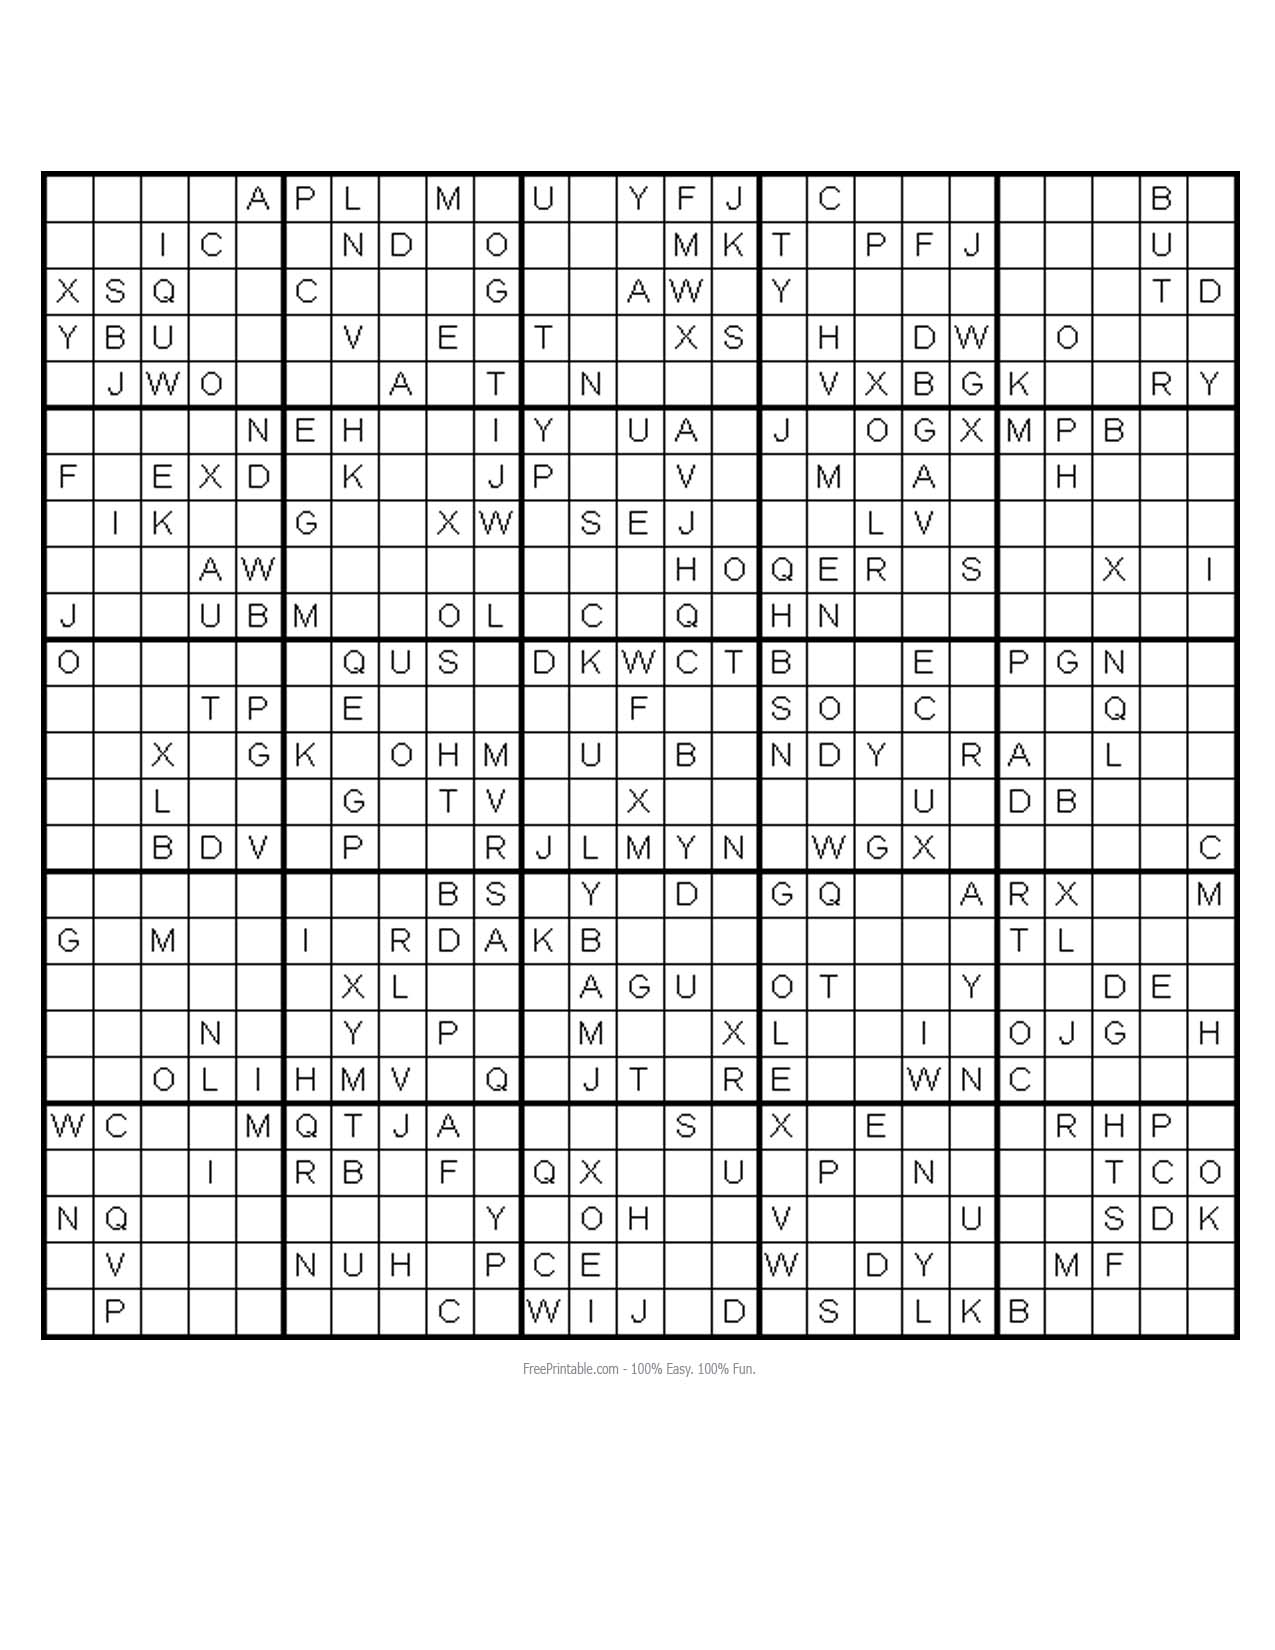 84 Free Printable Monster Sudoku Puzzles, Printable Monster